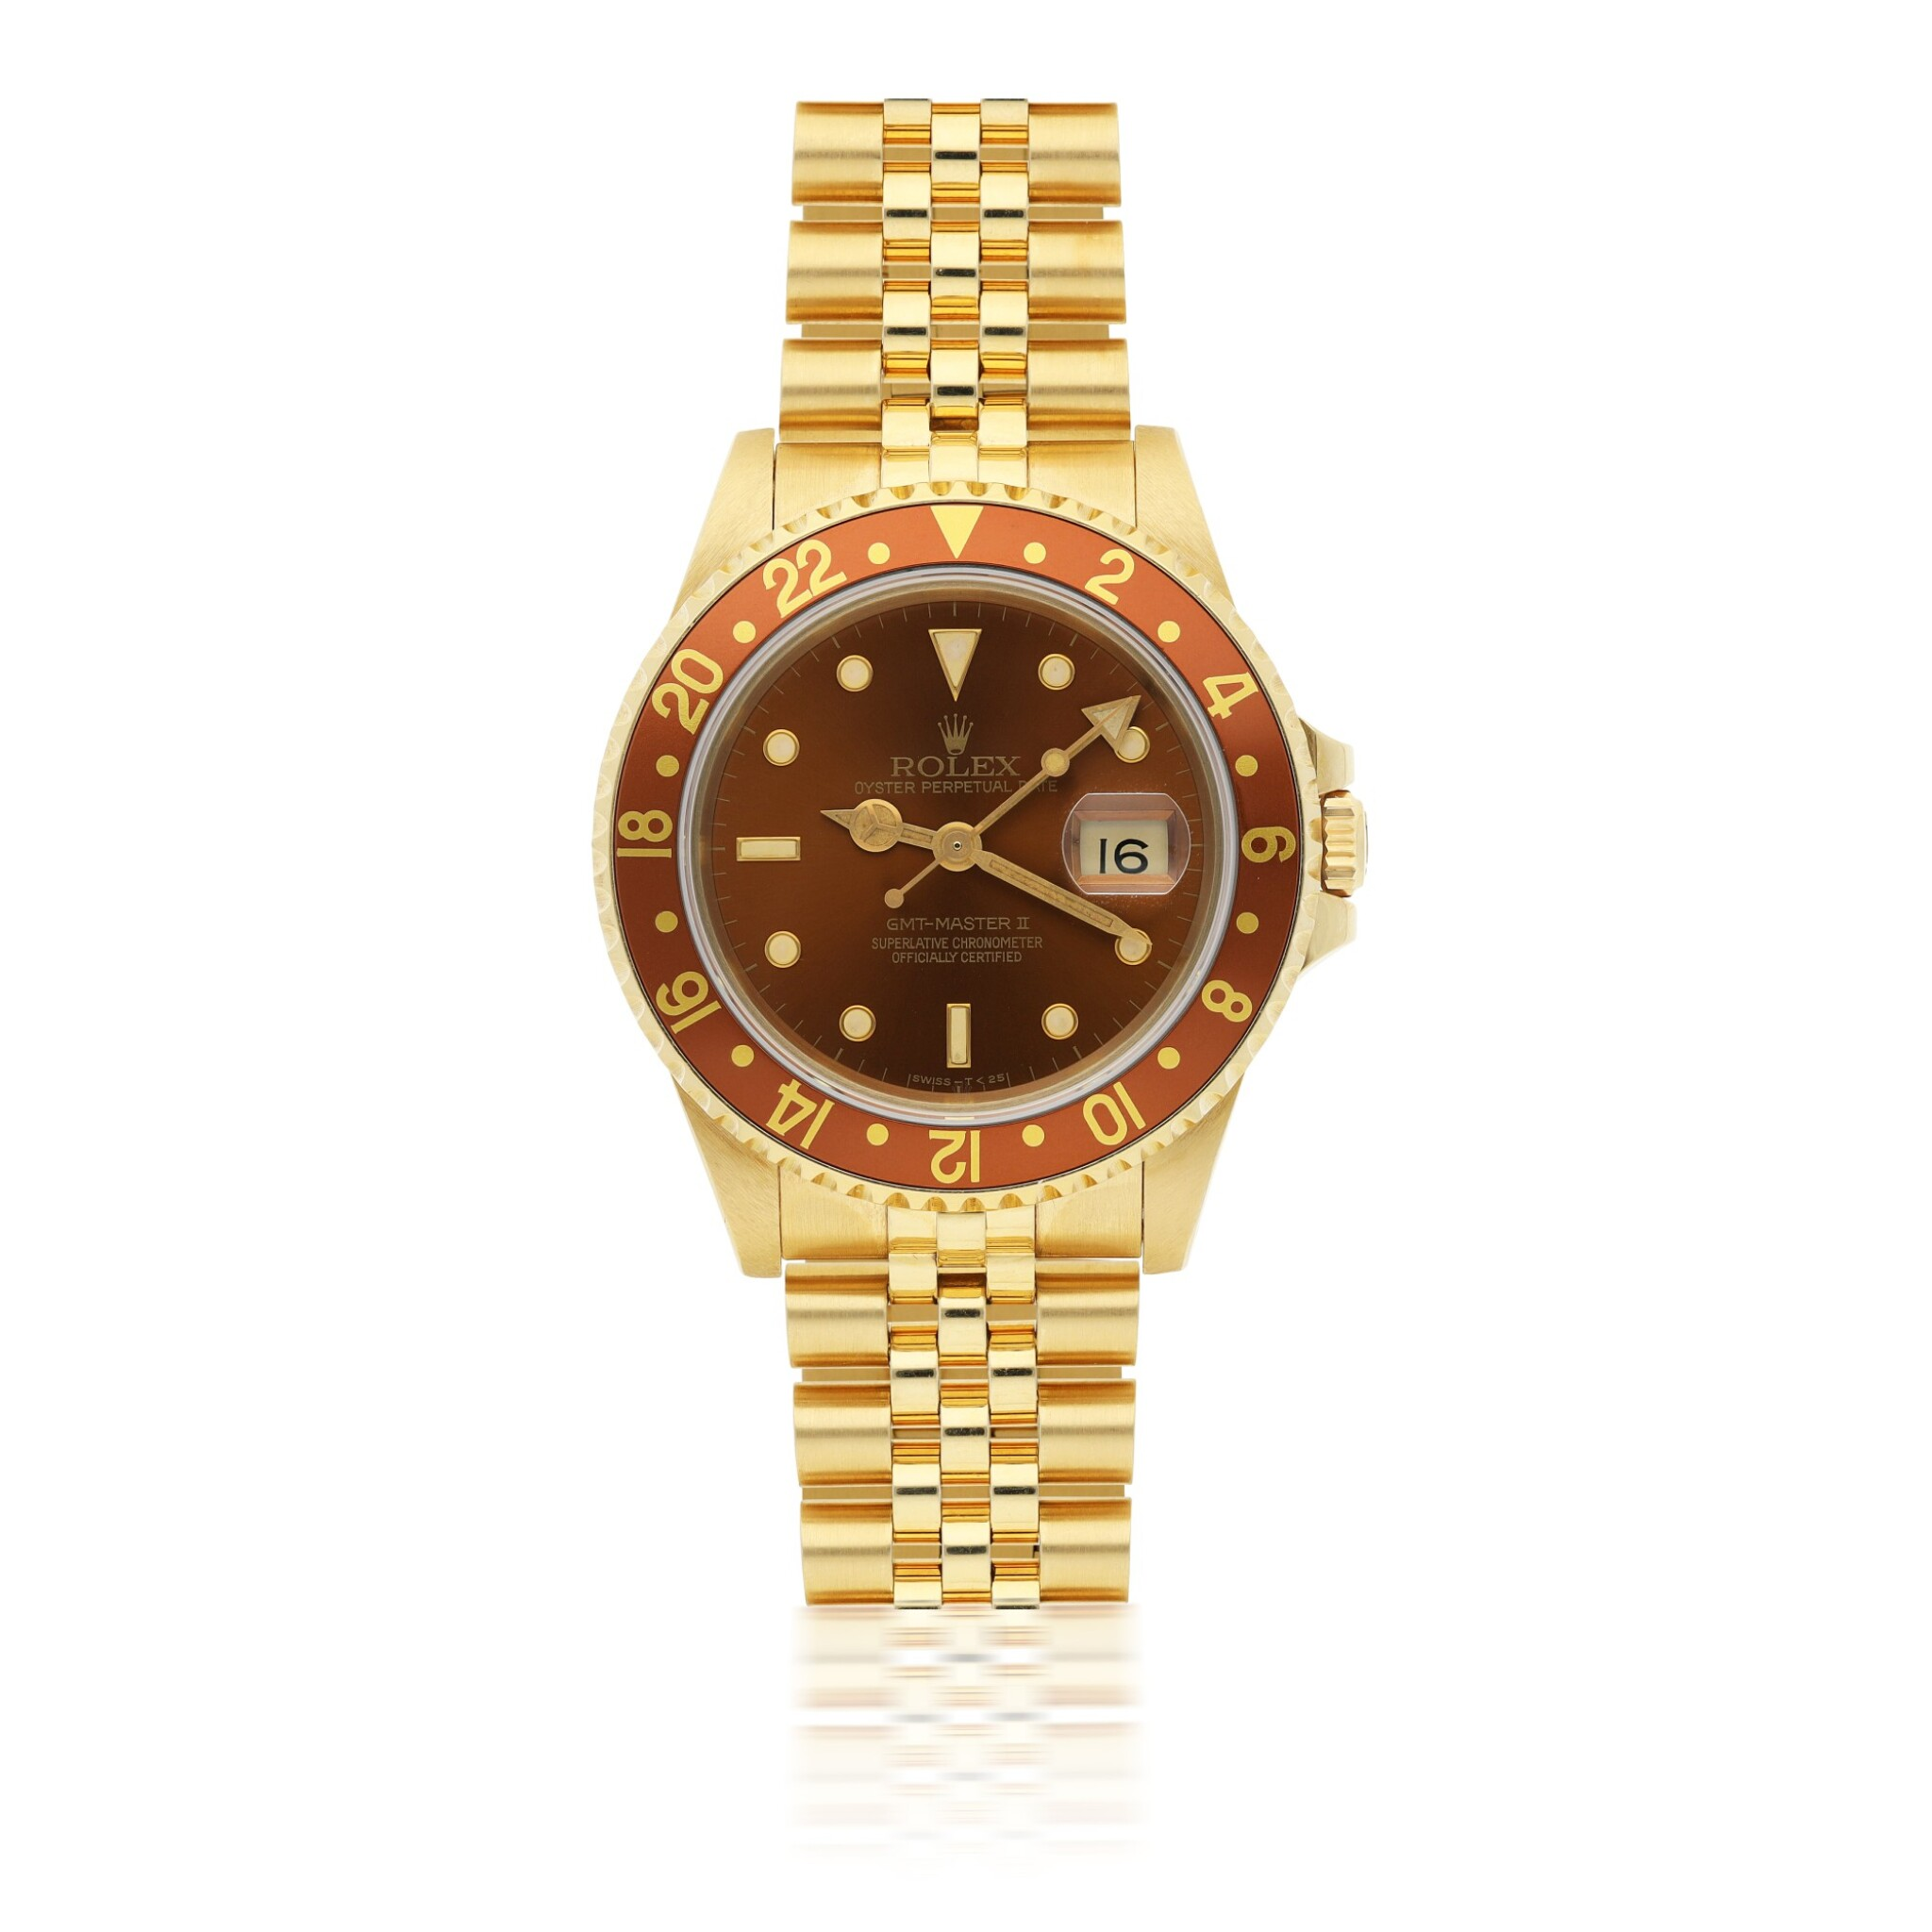 View full screen - View 1 of Lot 161. ROLEX   GMT-MASTER II REF 16718, A YELLOW GOLD AUTOMATIC DUAL TIME WRISTWATCH WITH DATE AND BRACELET CIRCA 1990.